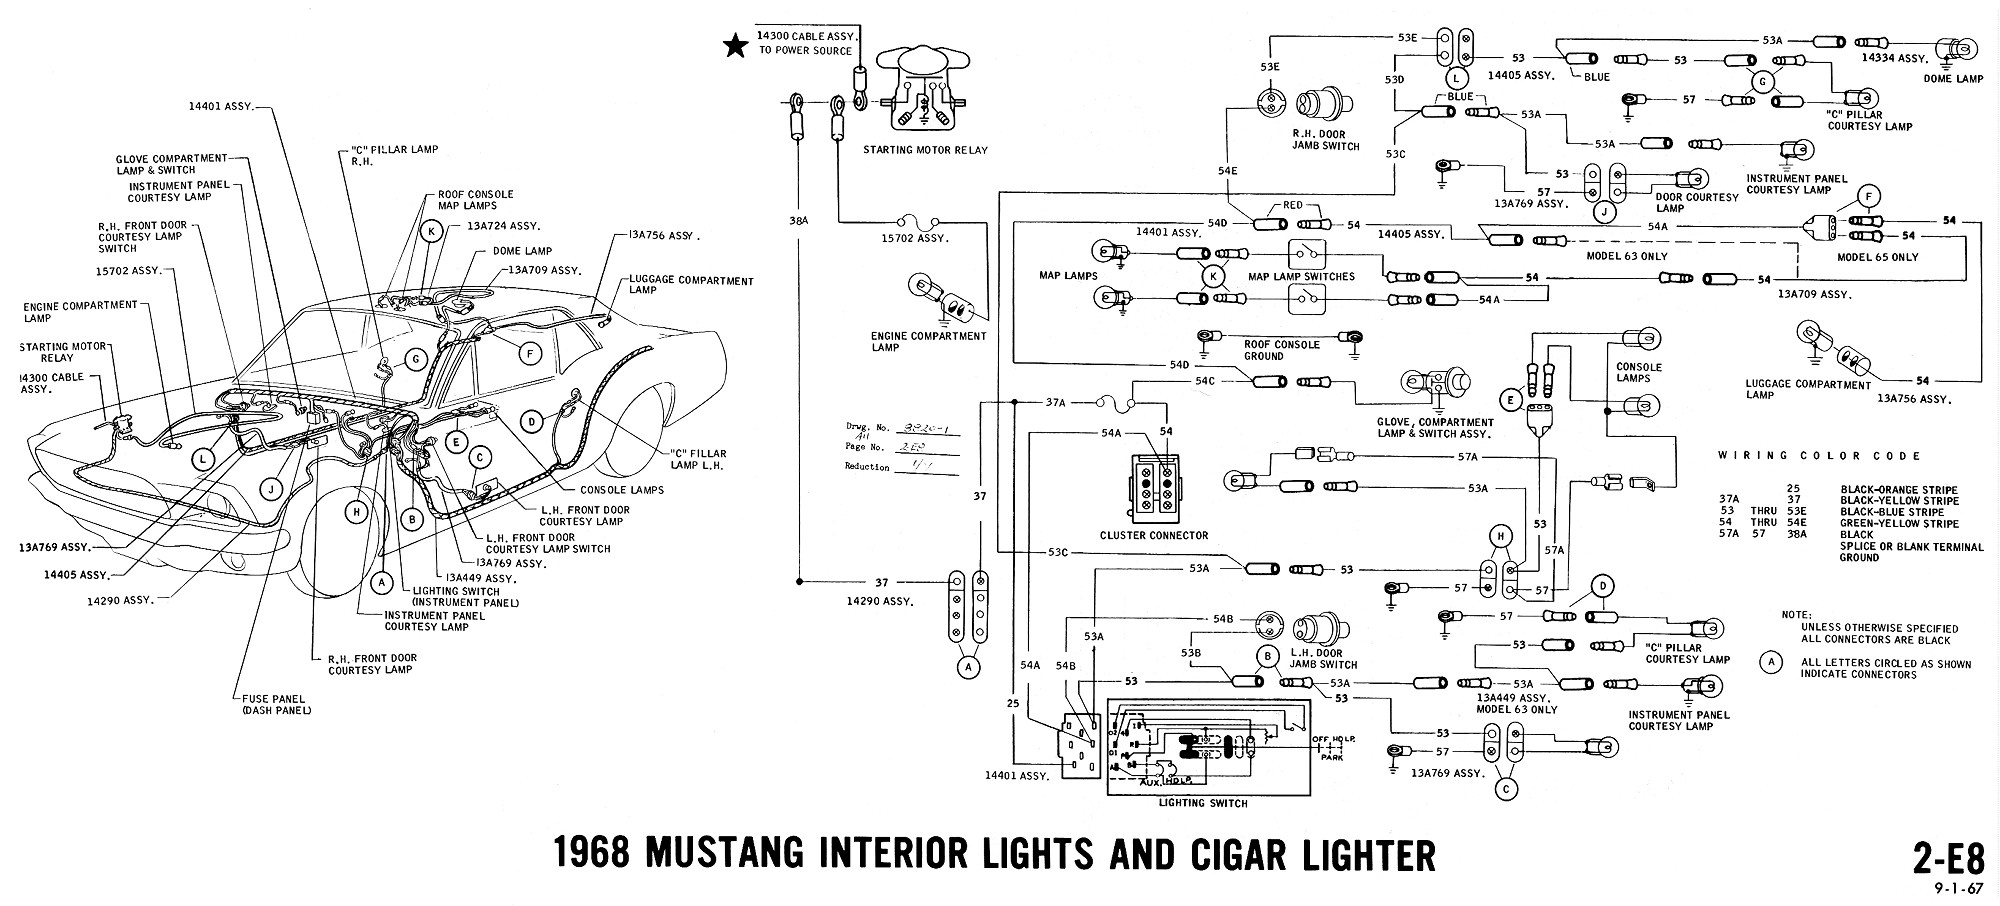 1968 mustang wiring diagram interior lights cigar lighter 1968 mustang wiring diagrams and vacuum schematics average joe 67 cougar wiring harness at panicattacktreatment.co